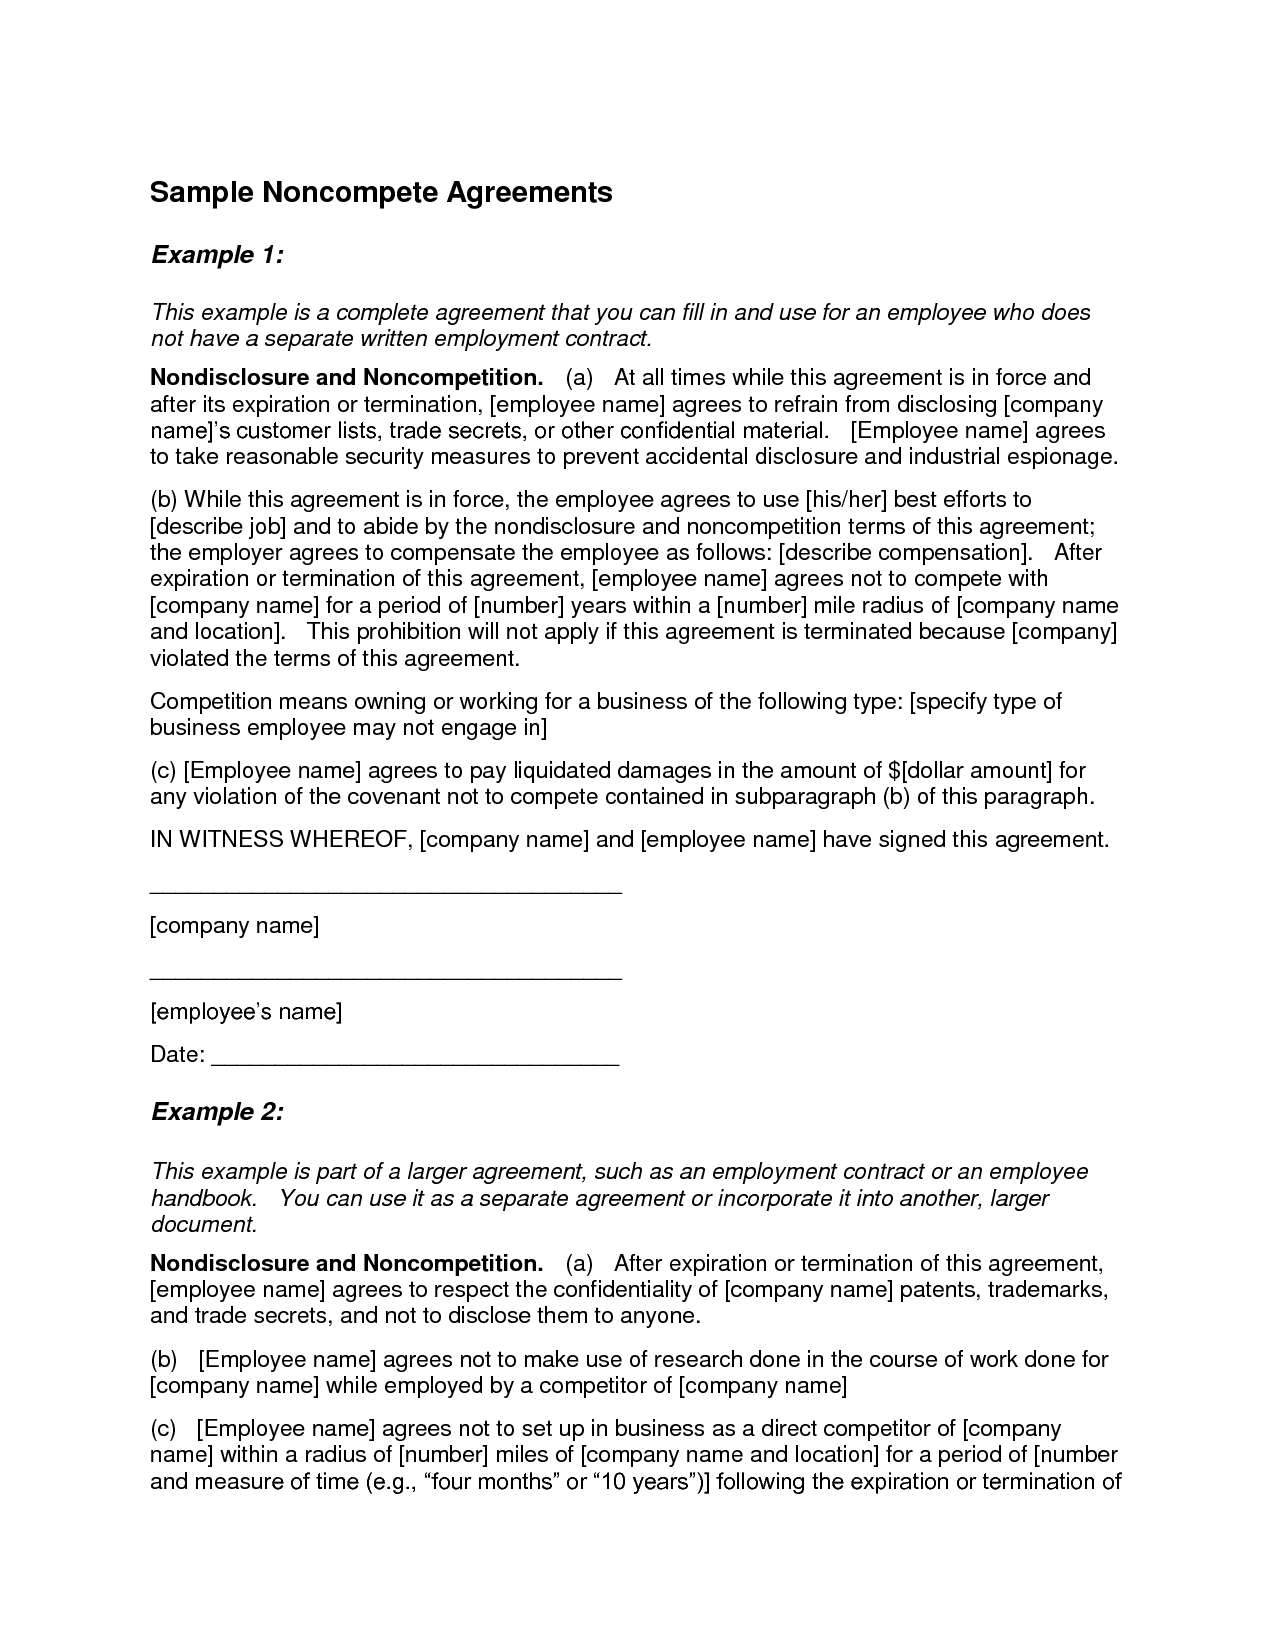 Non Compete Agreement Example Free Printable Documents Agreement Professional Templates Competing